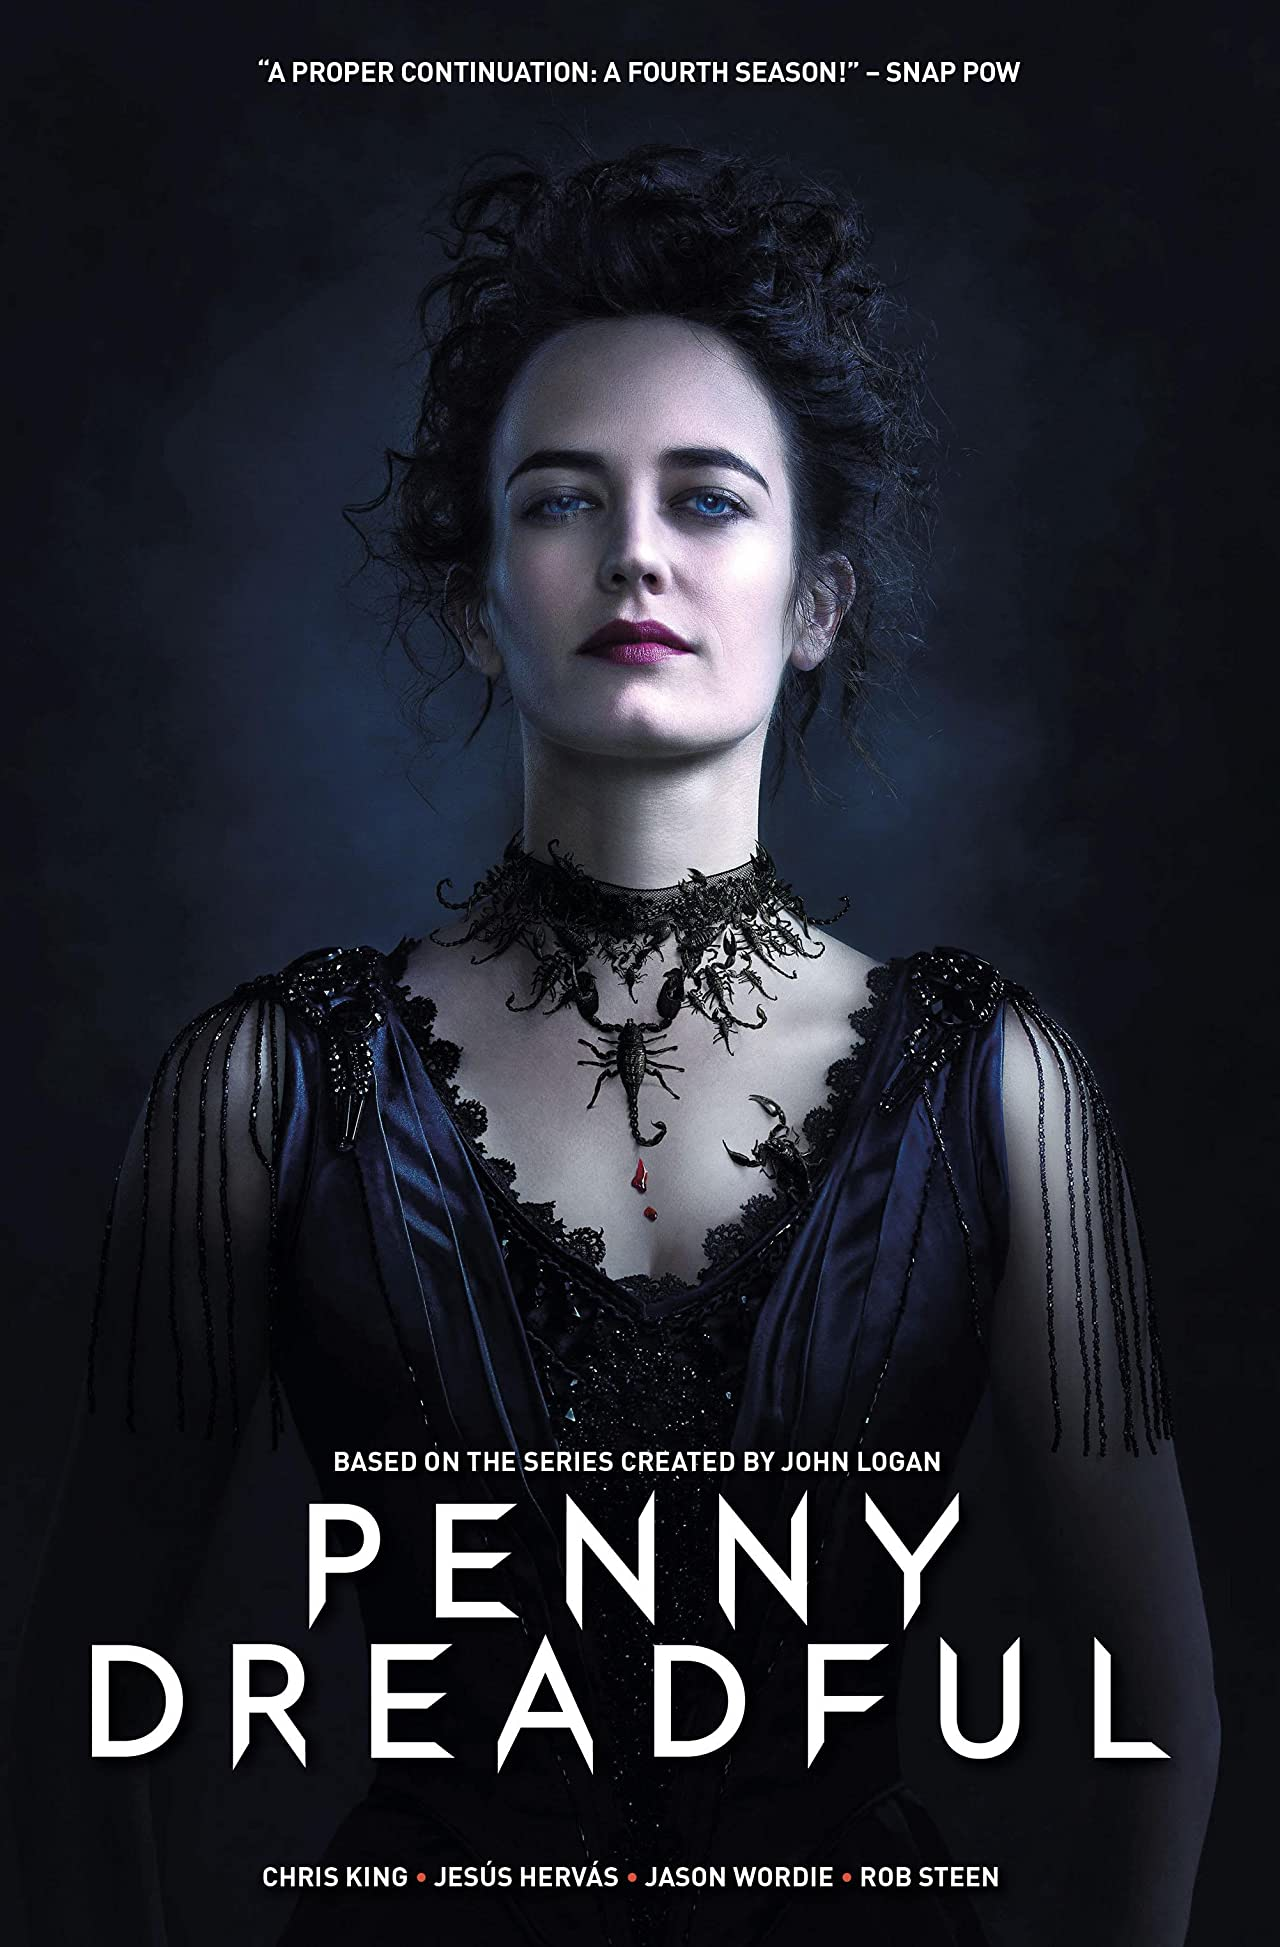 Penny Dreadful Vol. 4